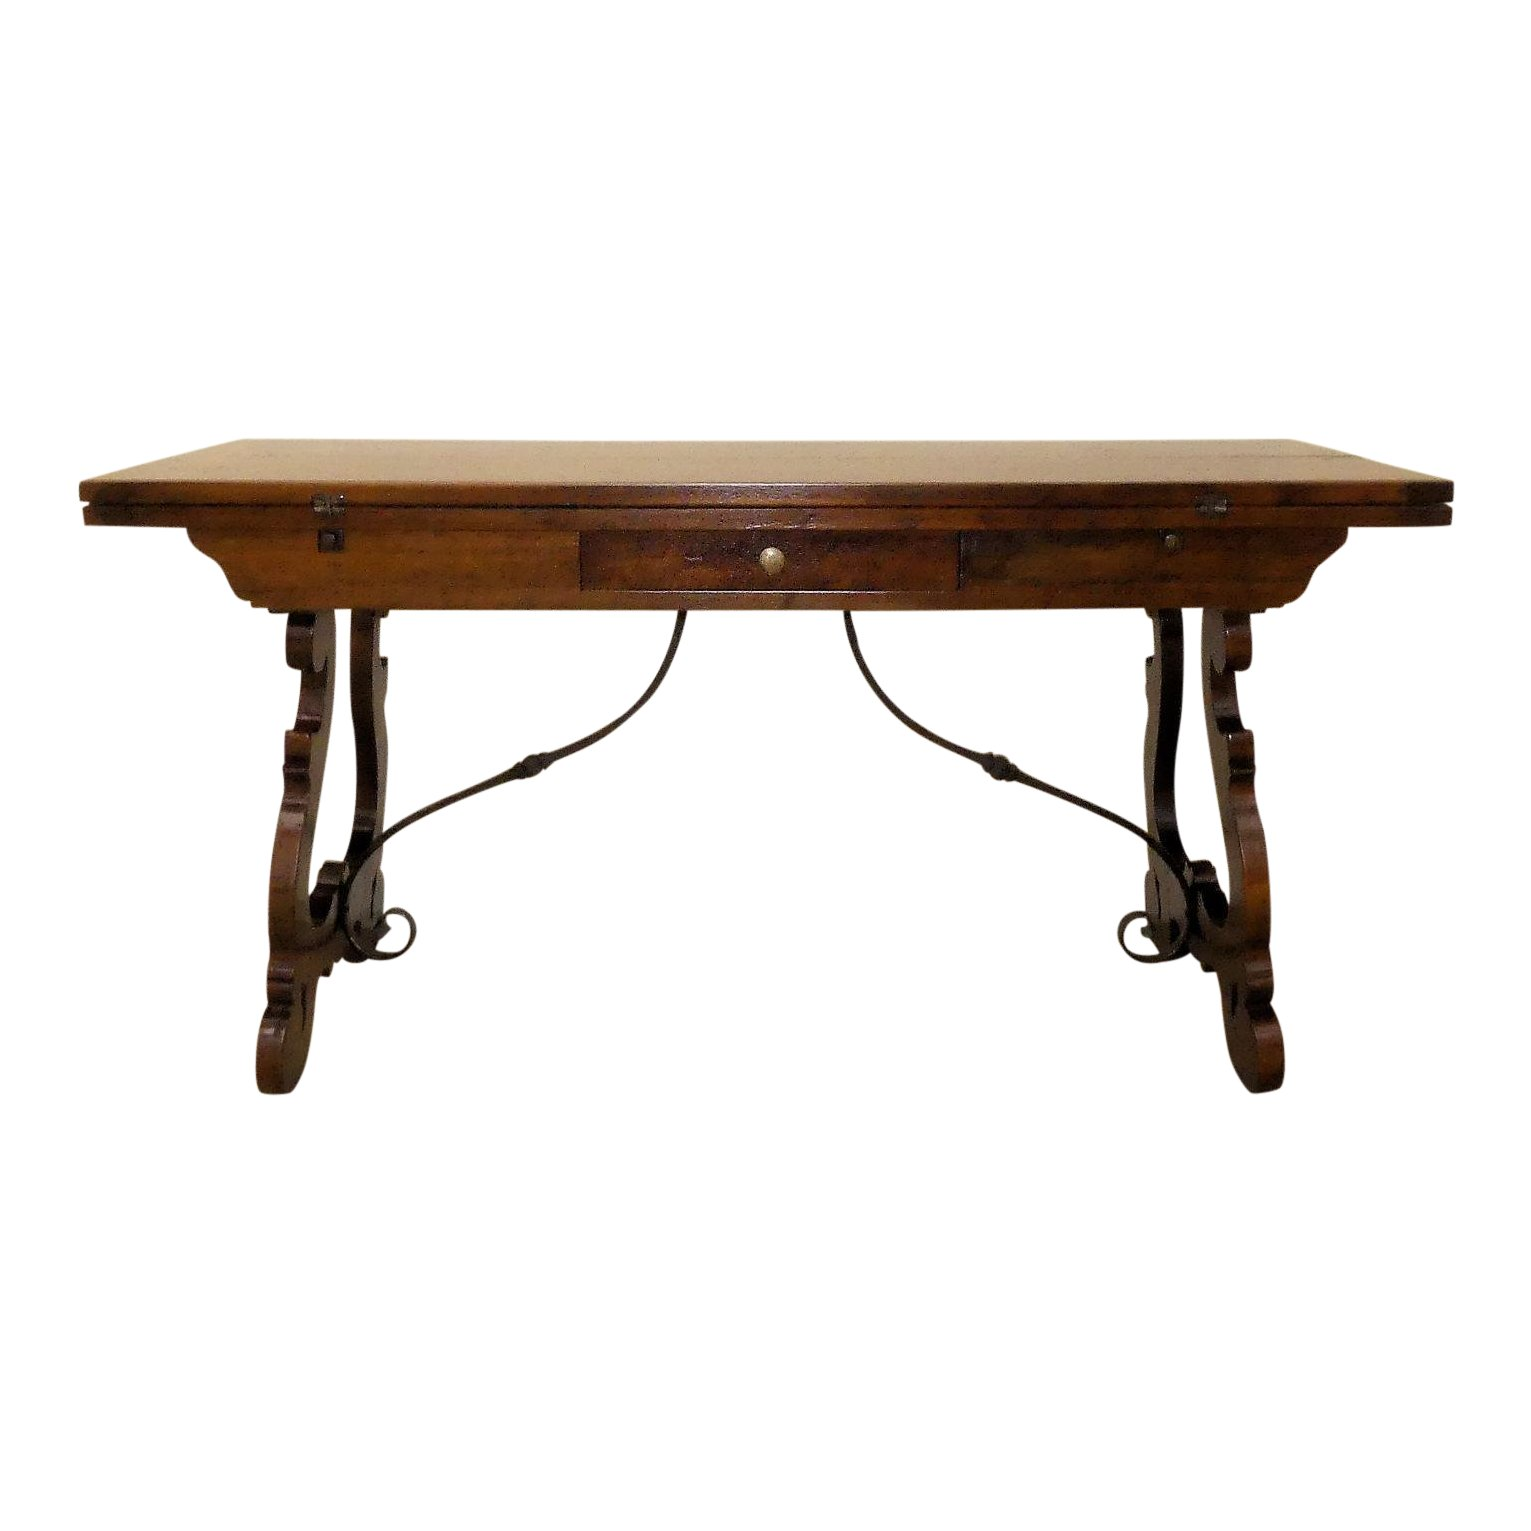 SOLD Trestle Base Flip Top Console-Dining Table or Desk